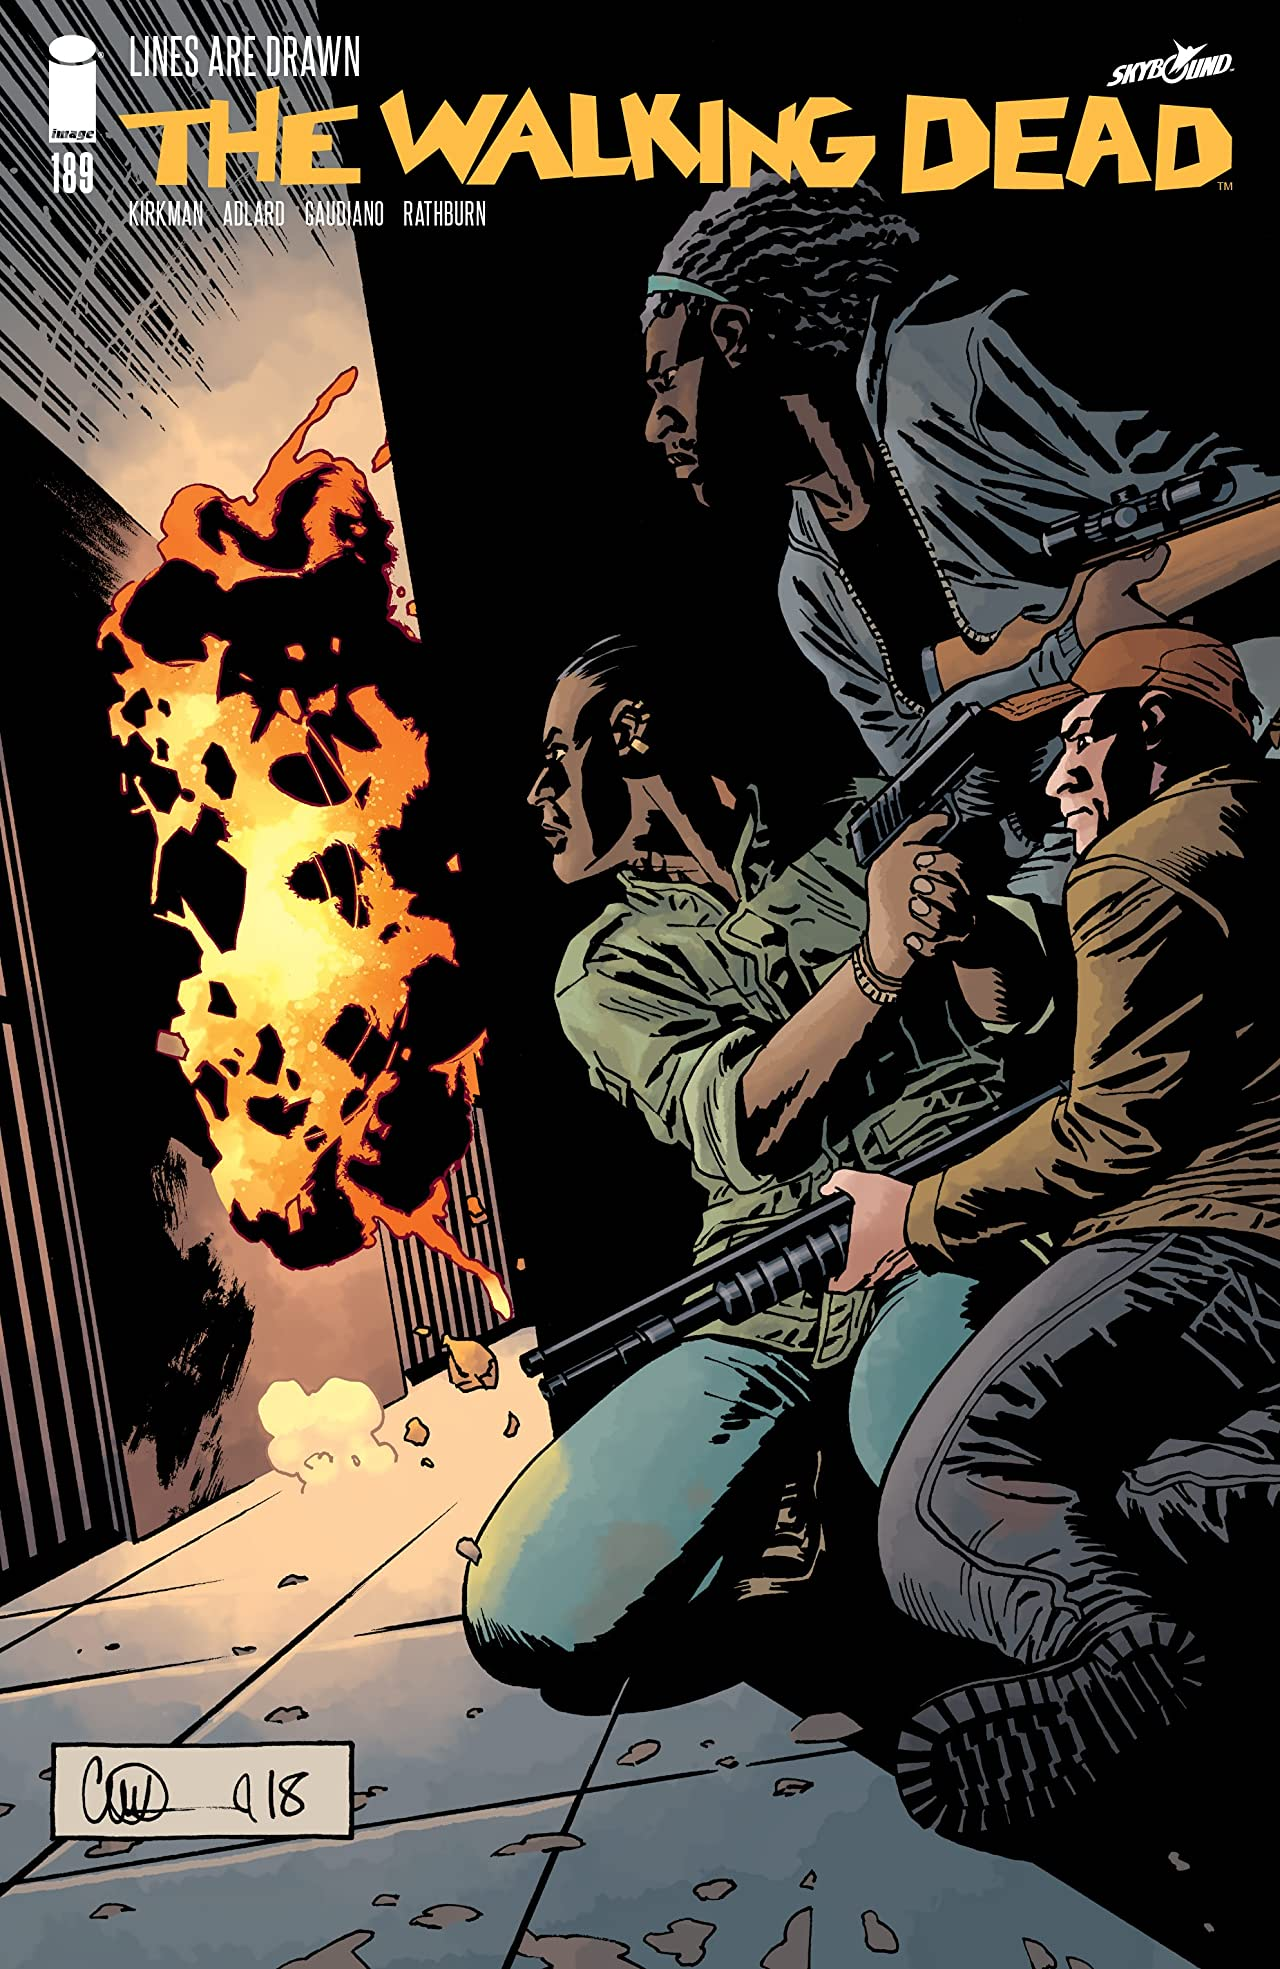 The Walking Dead No.189